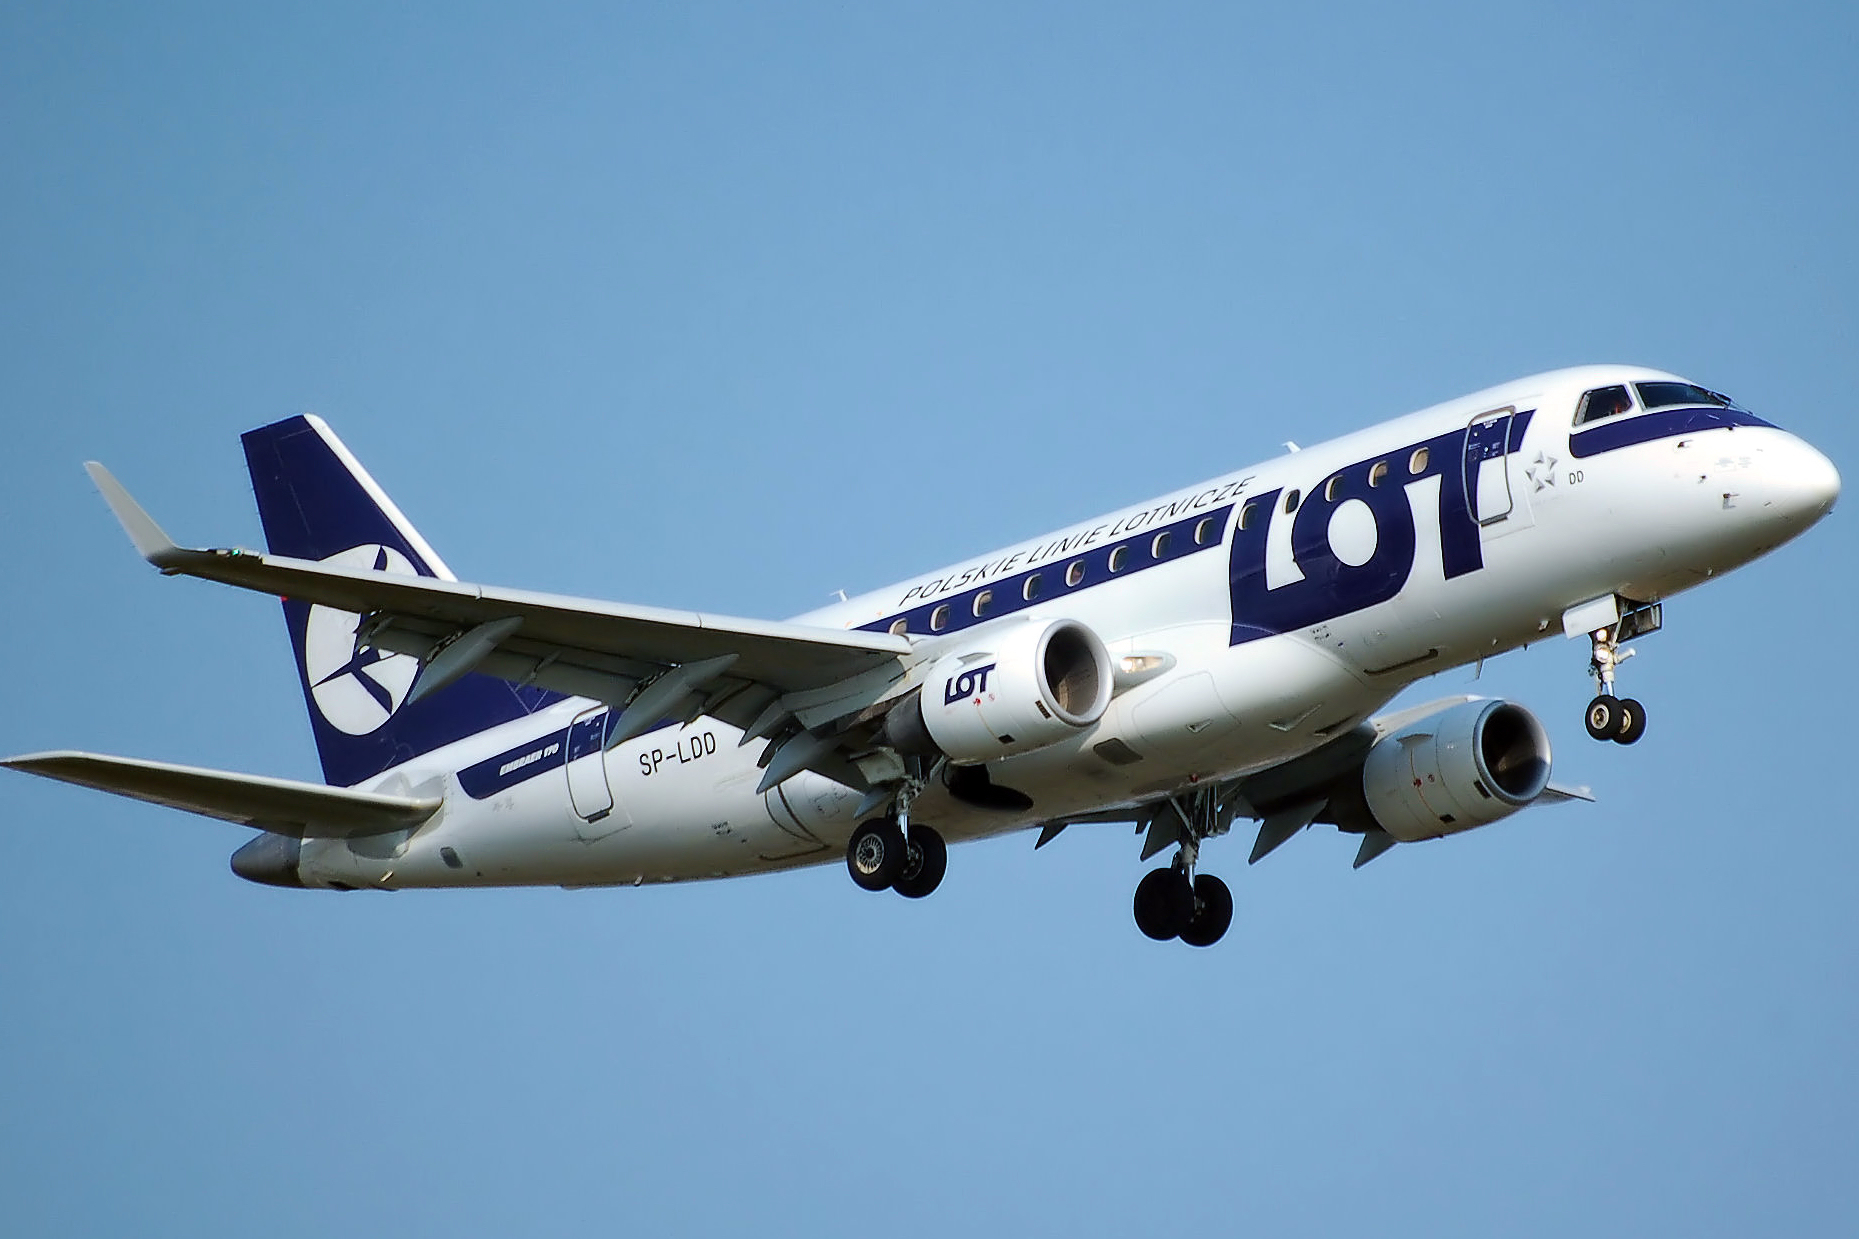 lot airlines sale 20 off on all flights from poland travelfree